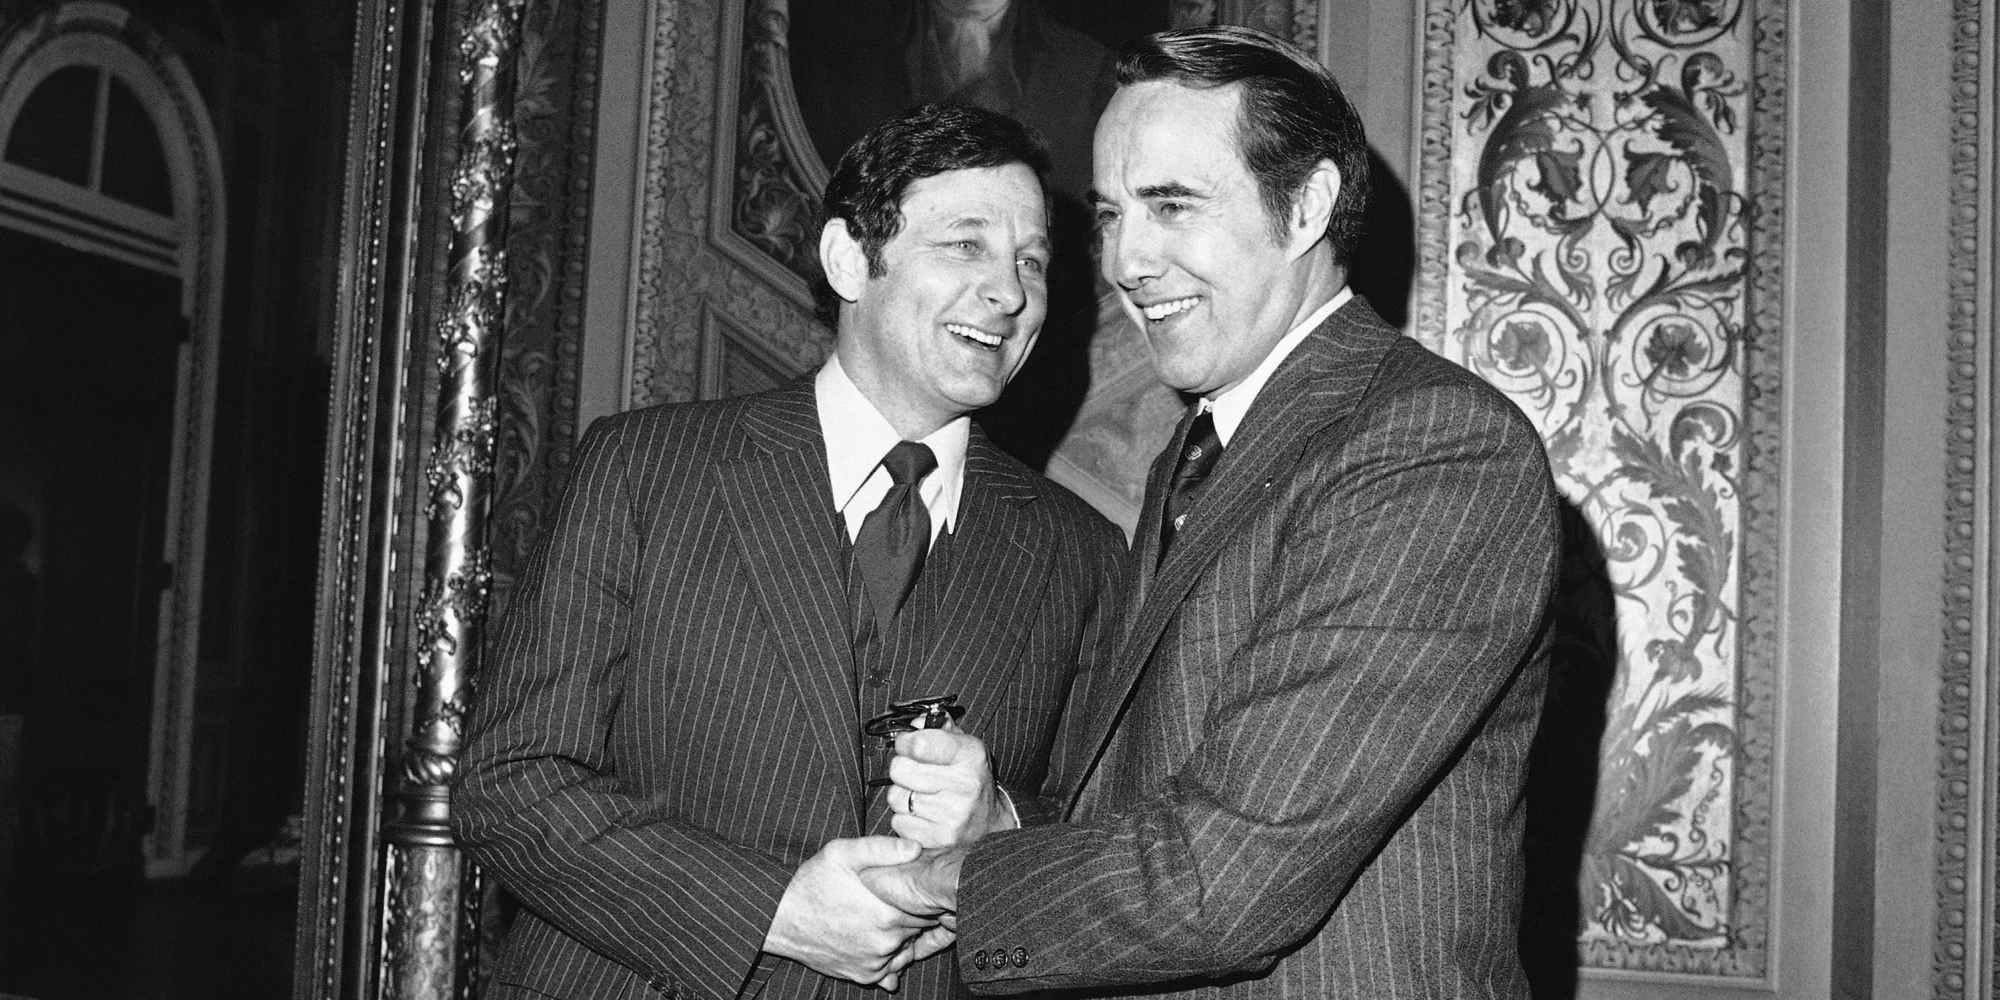 Sen. Birch Bayh, D-Ind., and Sen. Bob Dole, R-Kan., right, get together on Tuesday, Feb. 21, 1978 at the Capitol during a break in a closed session of the Senate that is discussing the Panama Canal treaties. Dole said he would move to make public charges involving Gen. Torrijos and members of his family being involved in drug traffic. Bayh, as chairman of the Senate Intelligence Committee, has custody of classified files dealing with the allegations. (AP Photo/ John Duricka)